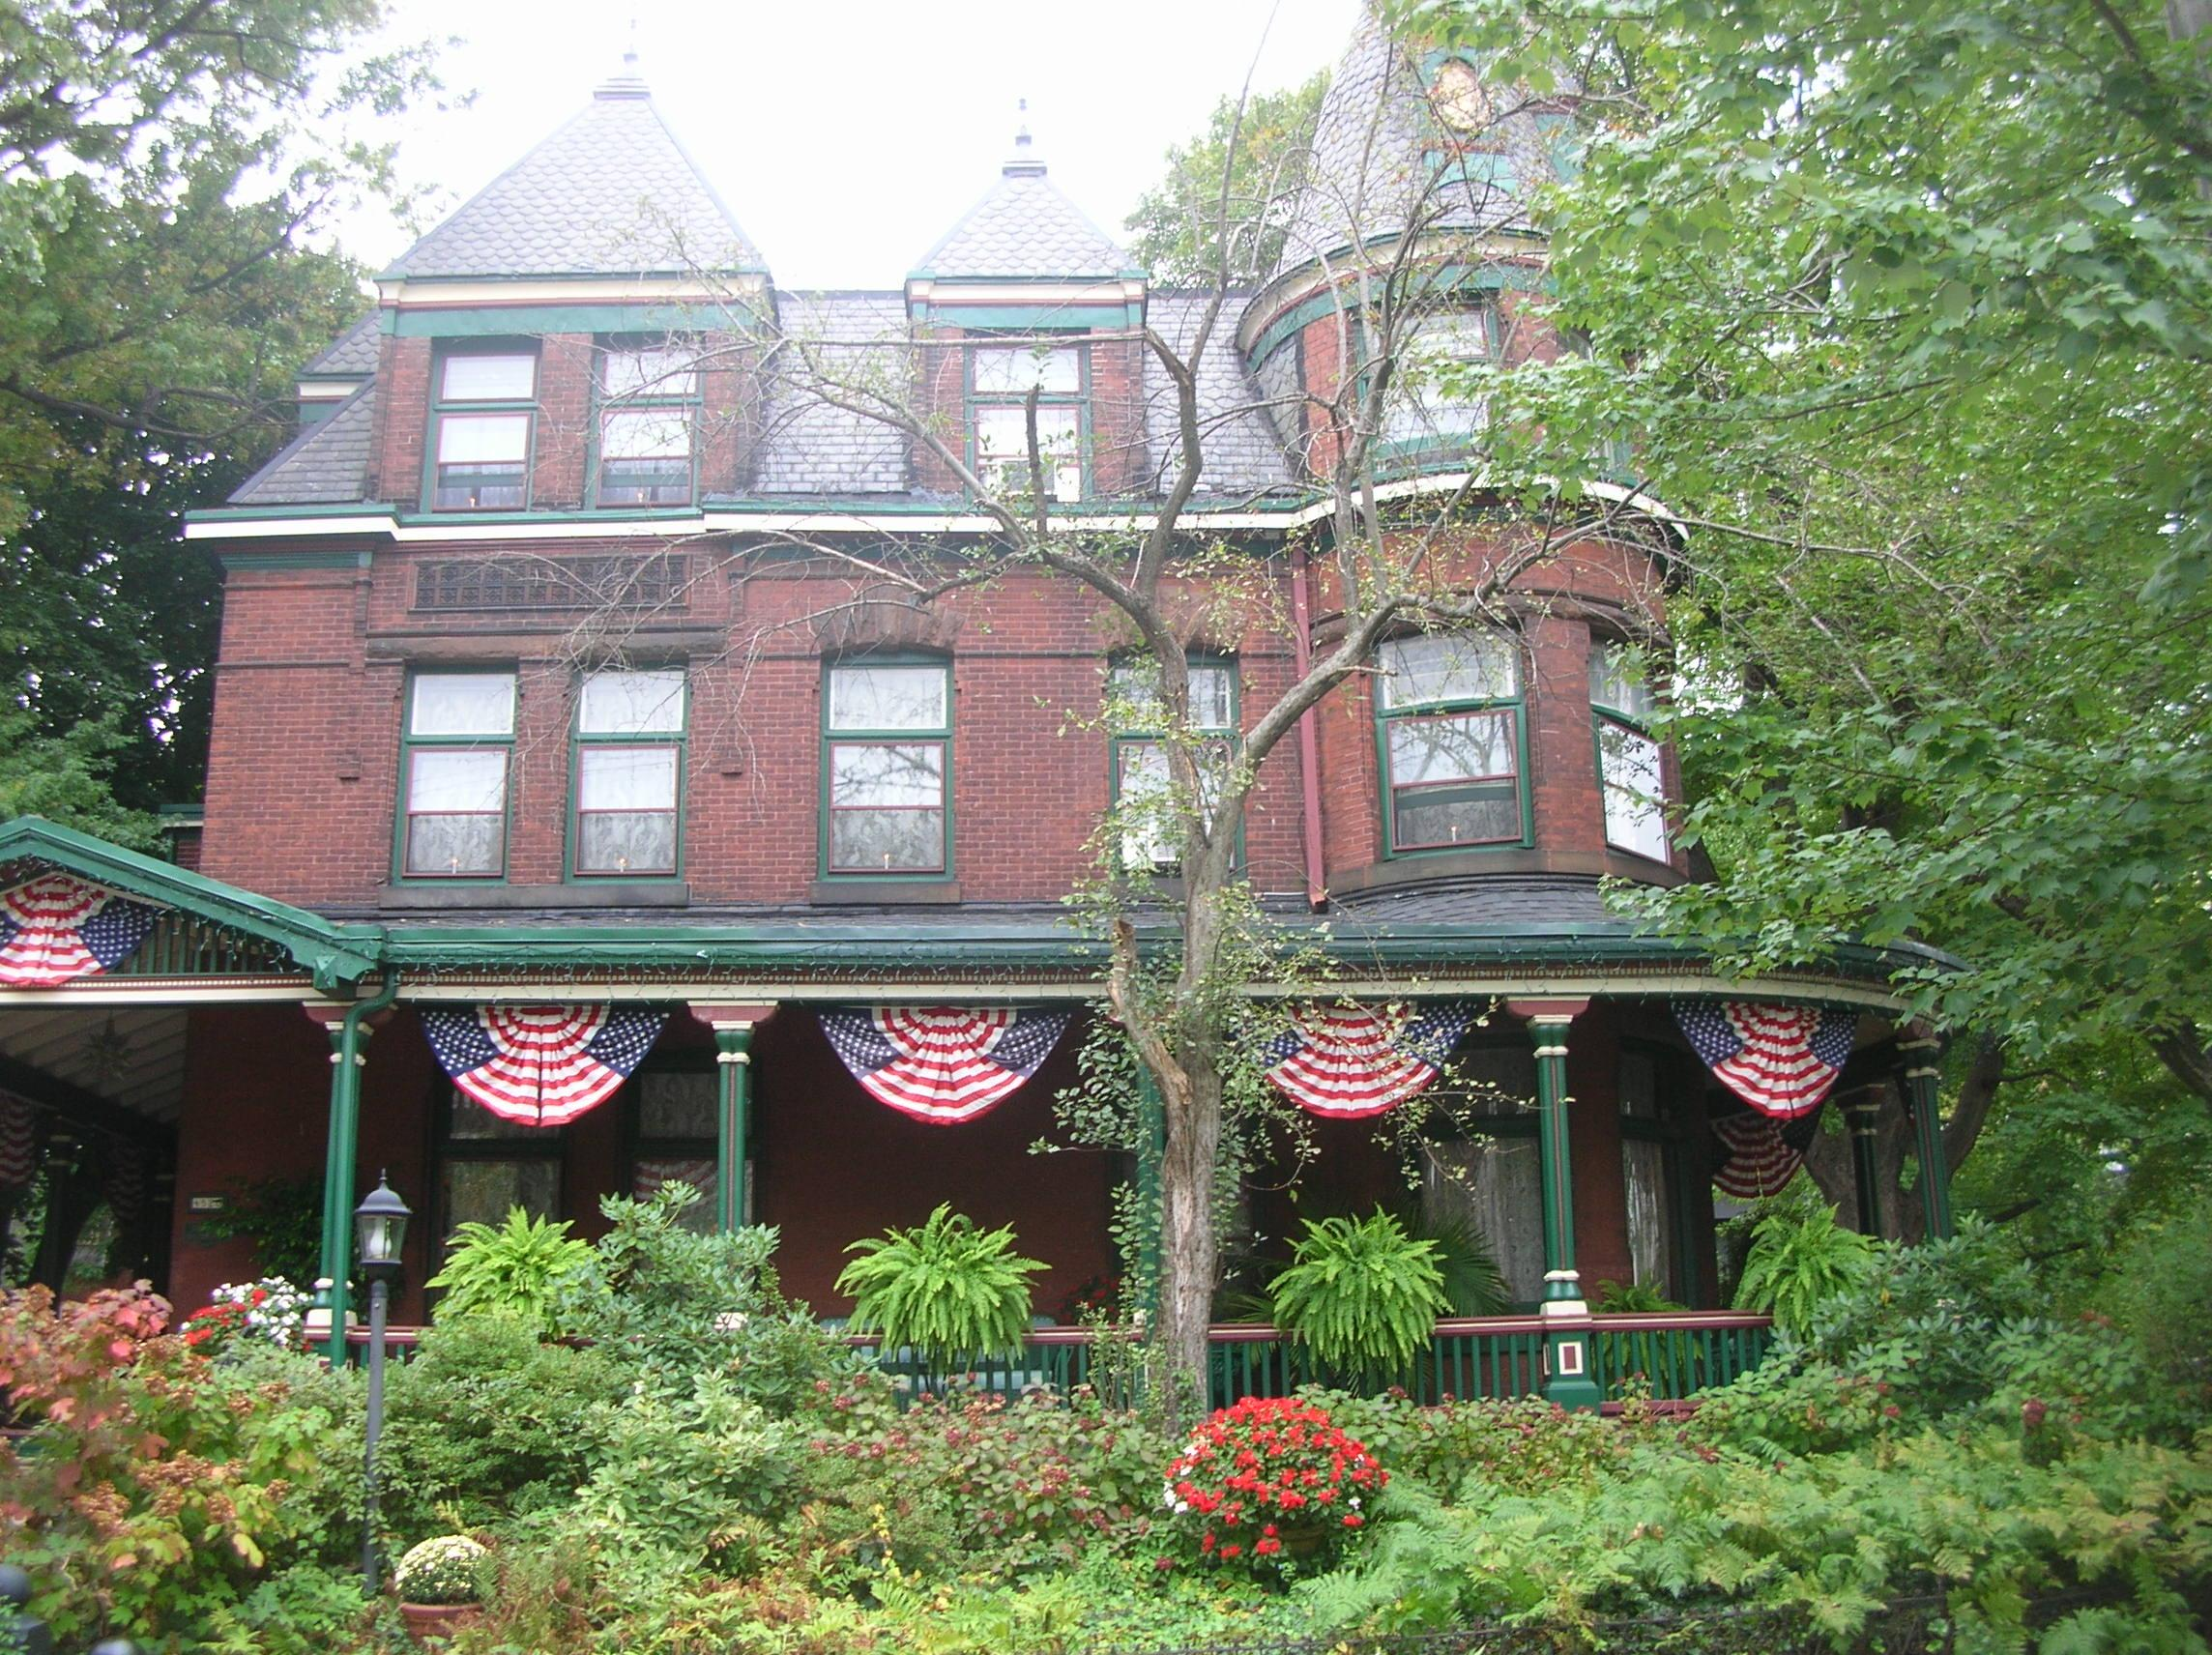 The Gables Bed and Breakfast